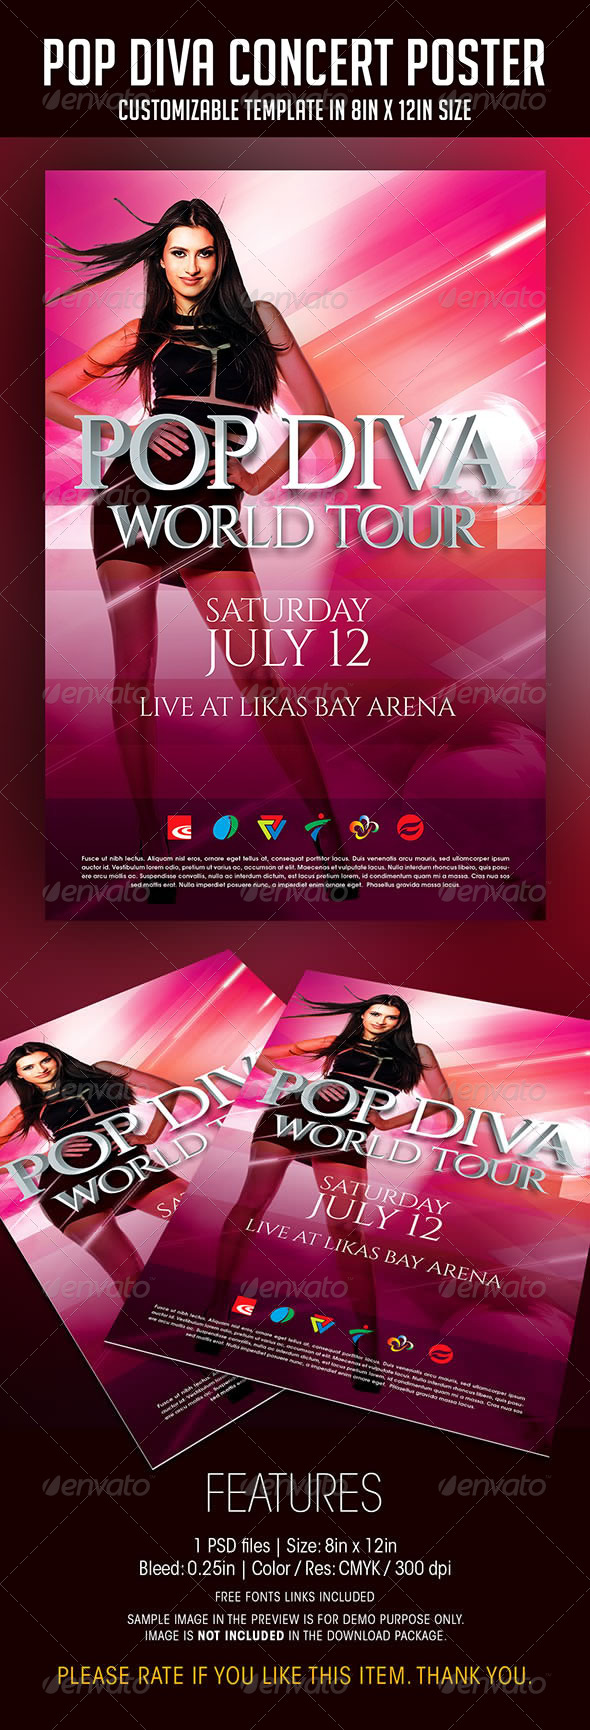 pop diva live concert poster by soulmemoria